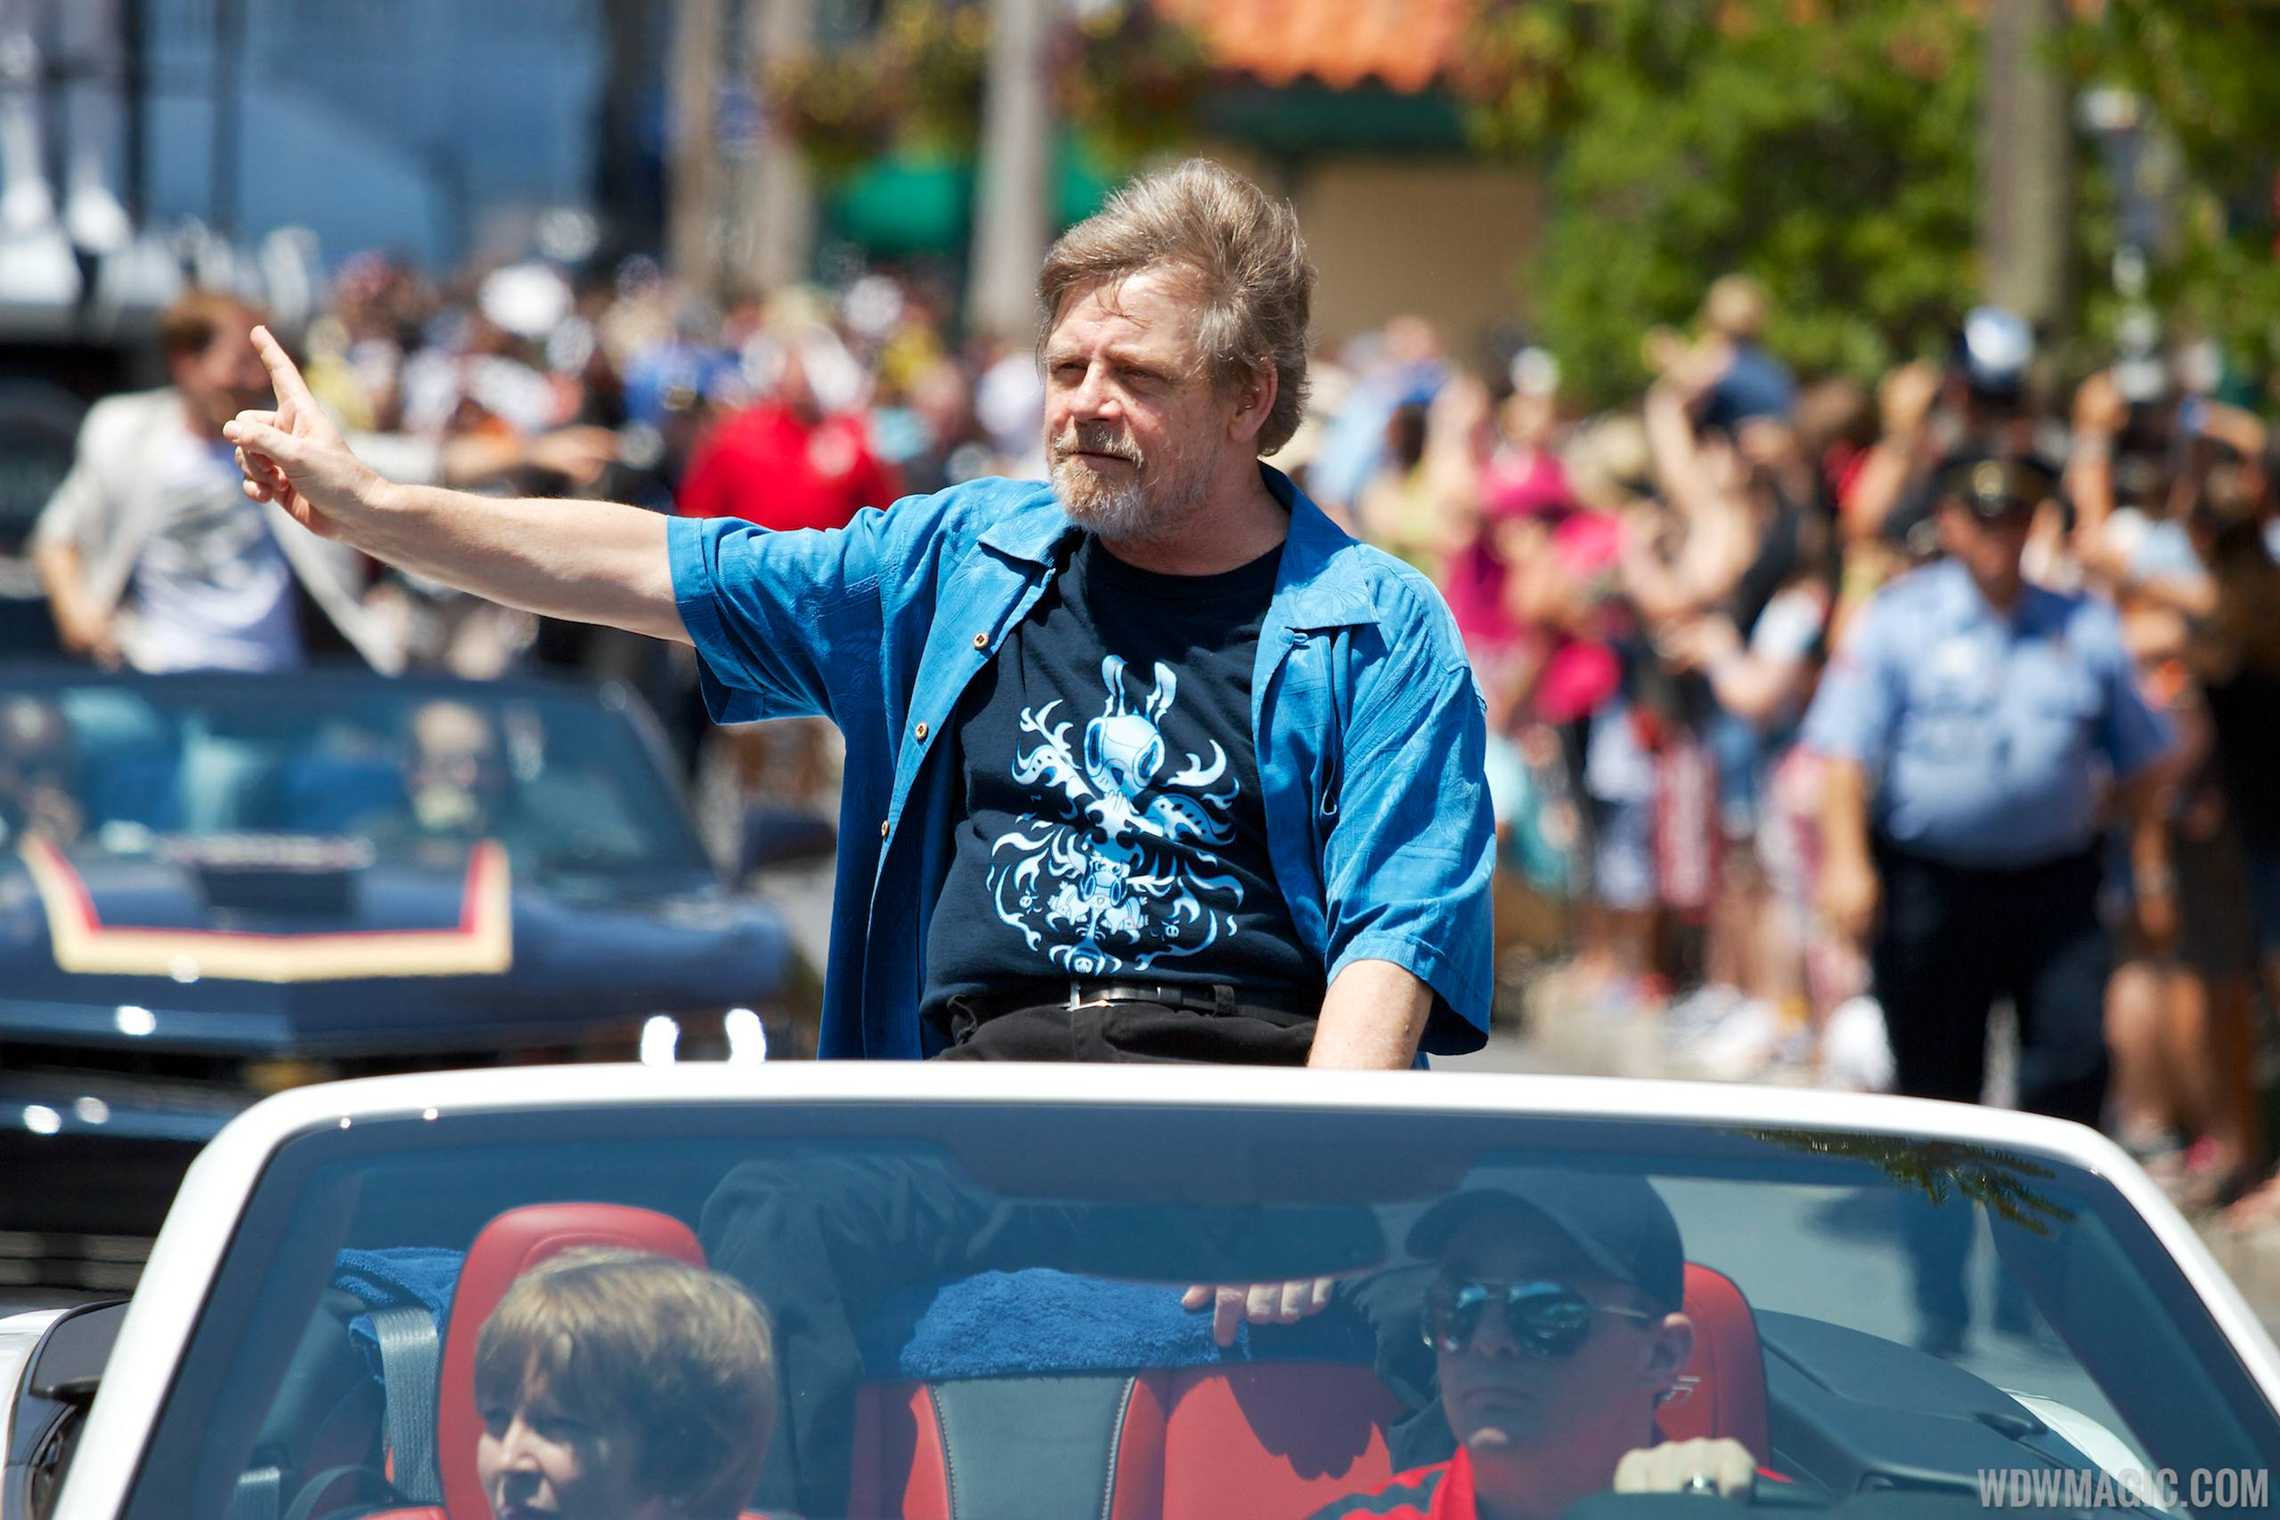 2014 Star Wars Weekends - Weekend 4 Legends of the Force motorcade celebrities - Mark Hamill